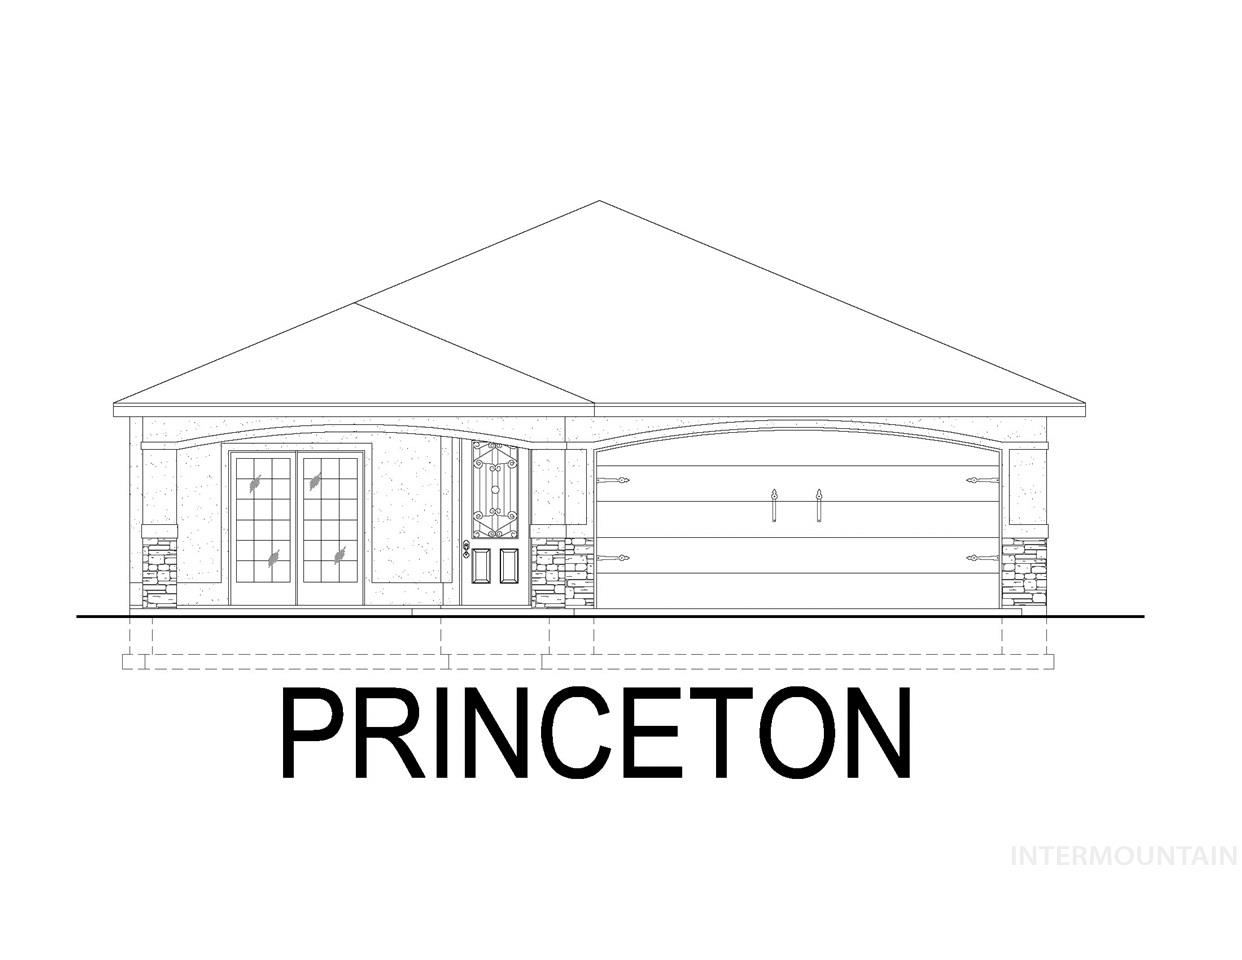 Stylish Princeton plan by renowned Ted Mason Signature Homes. Indulge yourself w/rich interior finishes & full stucco-stone exterior. All bedrooms w/full baths. Front porch, covered patio + fully landscaped. Energy efficient with HERS score. You'll love the huge community clubhouse & fitness center-among the finest in the Treasure Valley with pool & grand space for entertaining. Full exterior landscaping maintenance included in HOA-$350/qt.